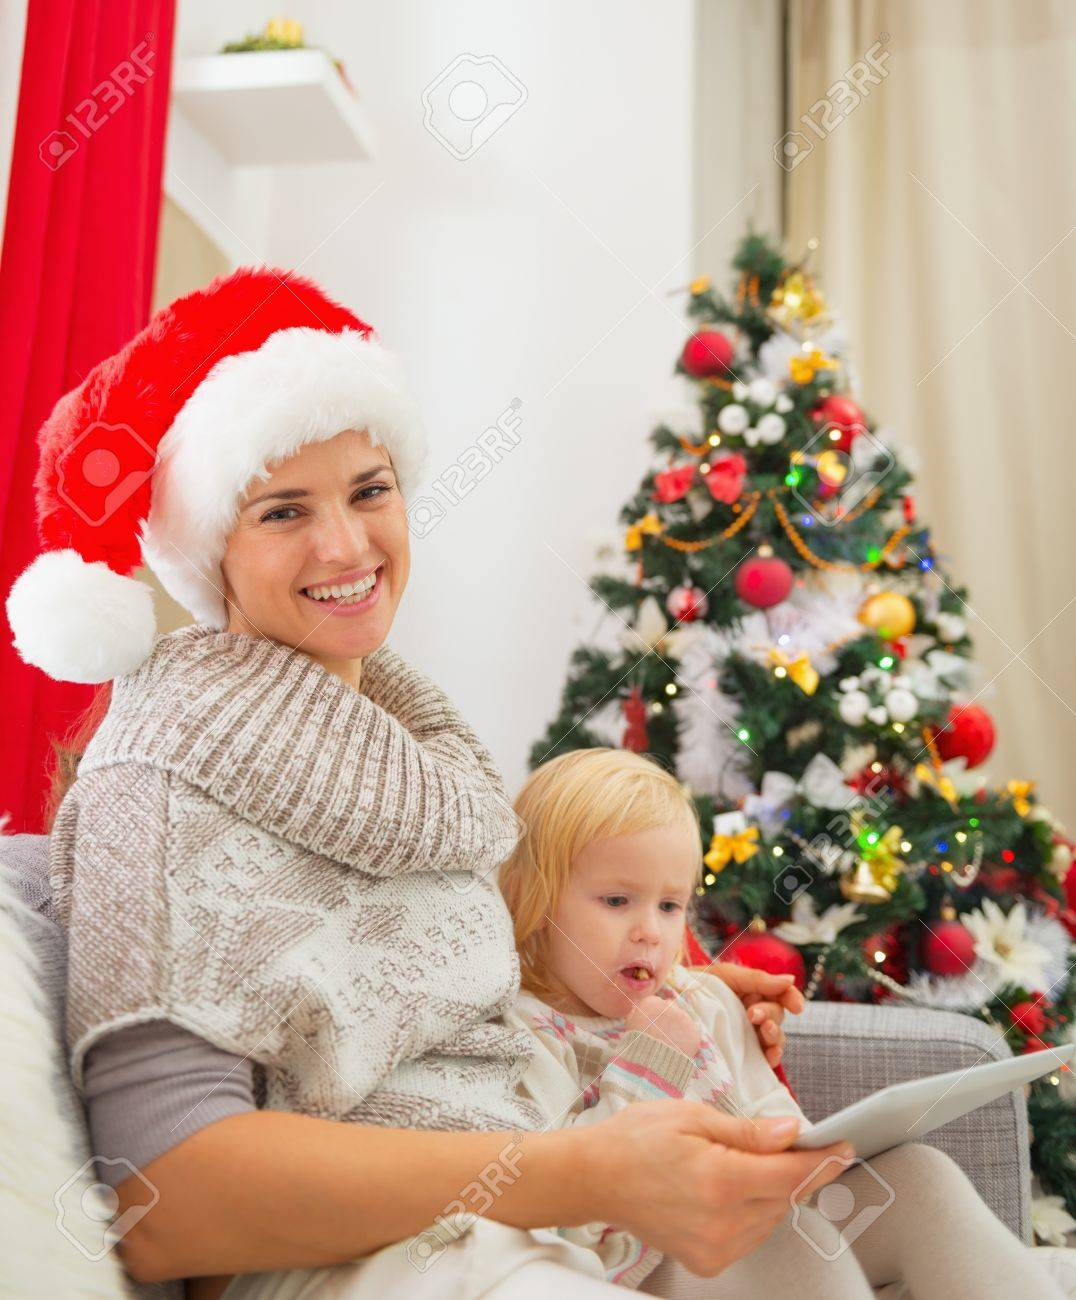 Smiling mother and baby girl using tablet PC near Christmas tree Stock Photo - 16577965